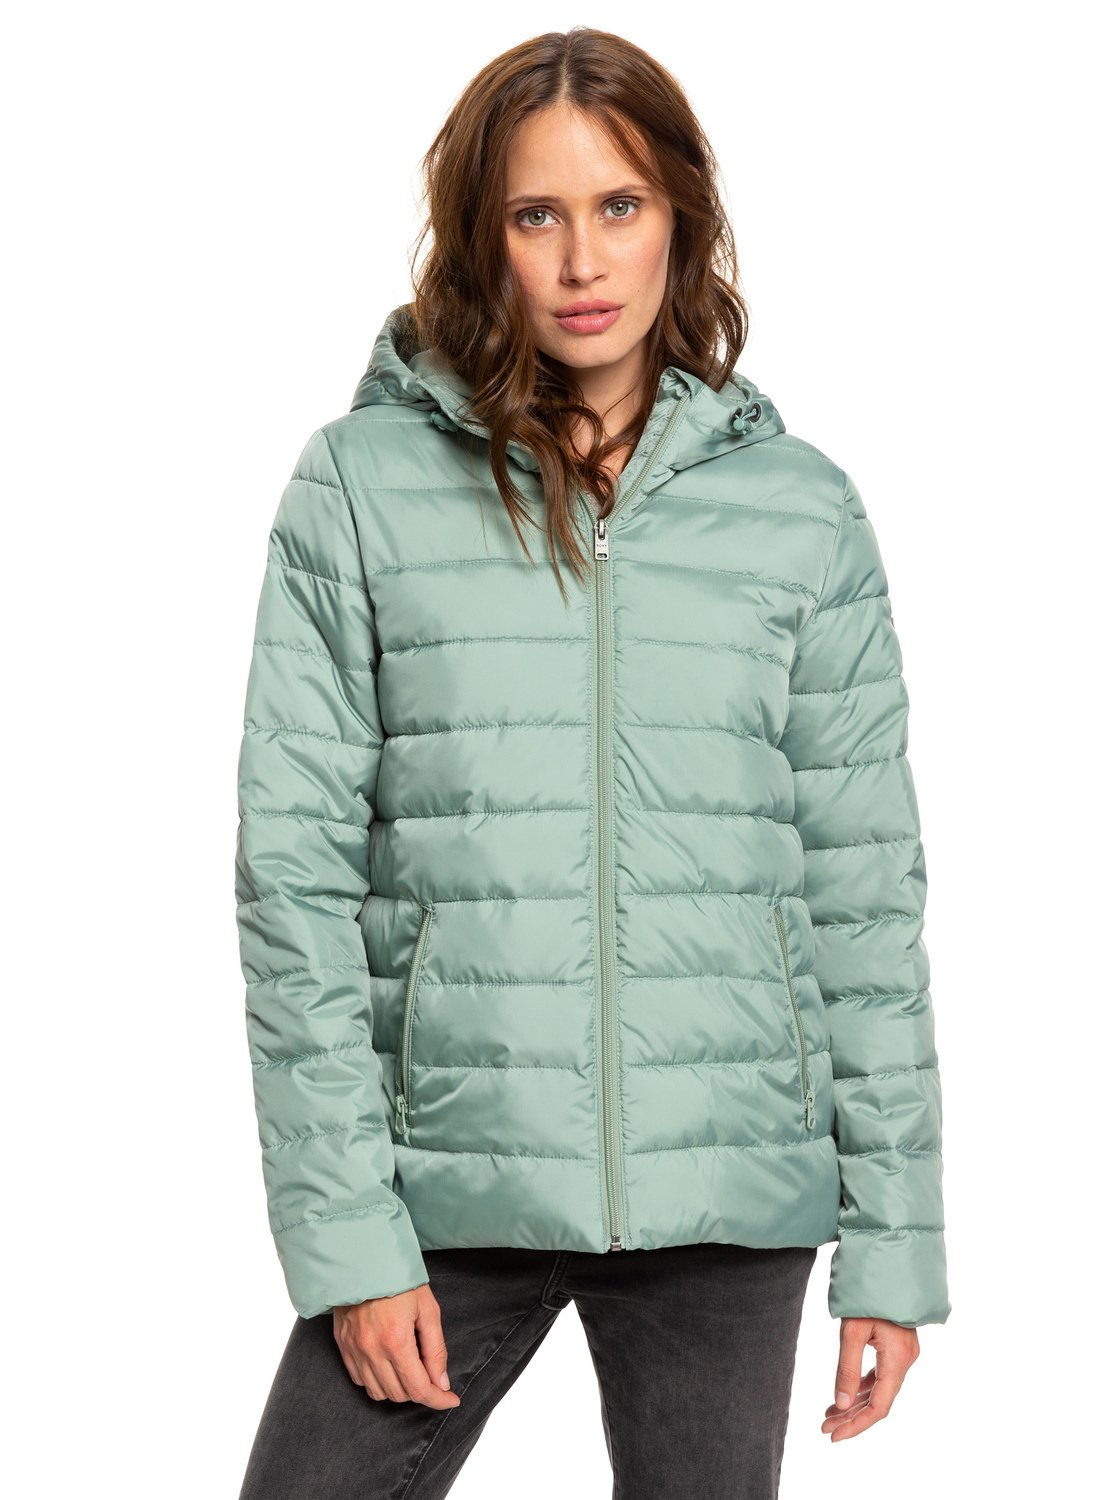 8812f09f60fd 0 Rock Peak - Water Repellent Padded Jacket for Women Green ERJJK03250 Roxy